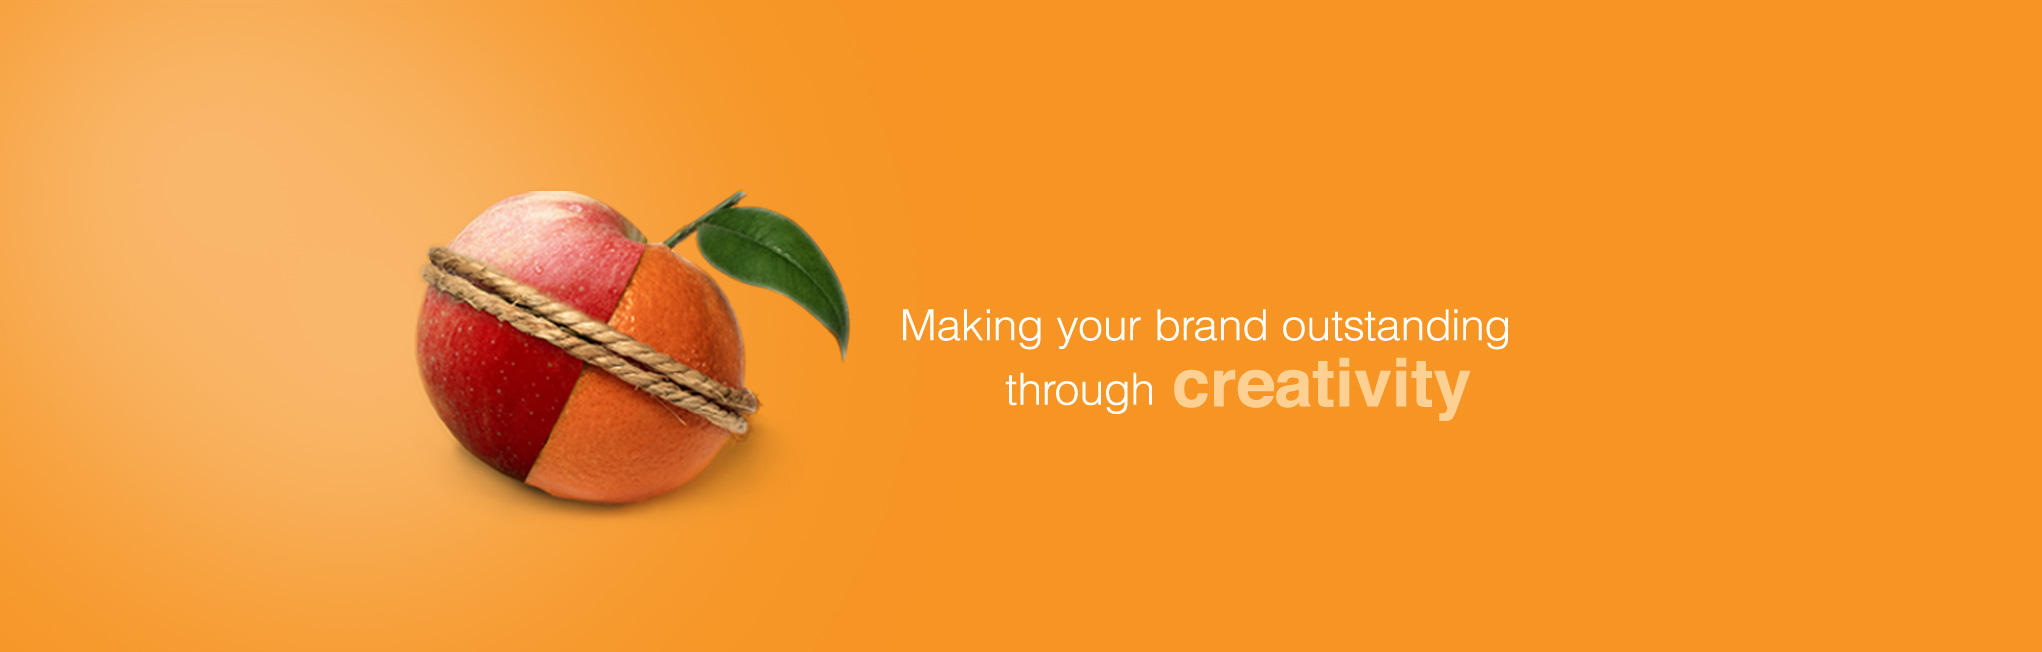 web-banner_orange_apple.jpg